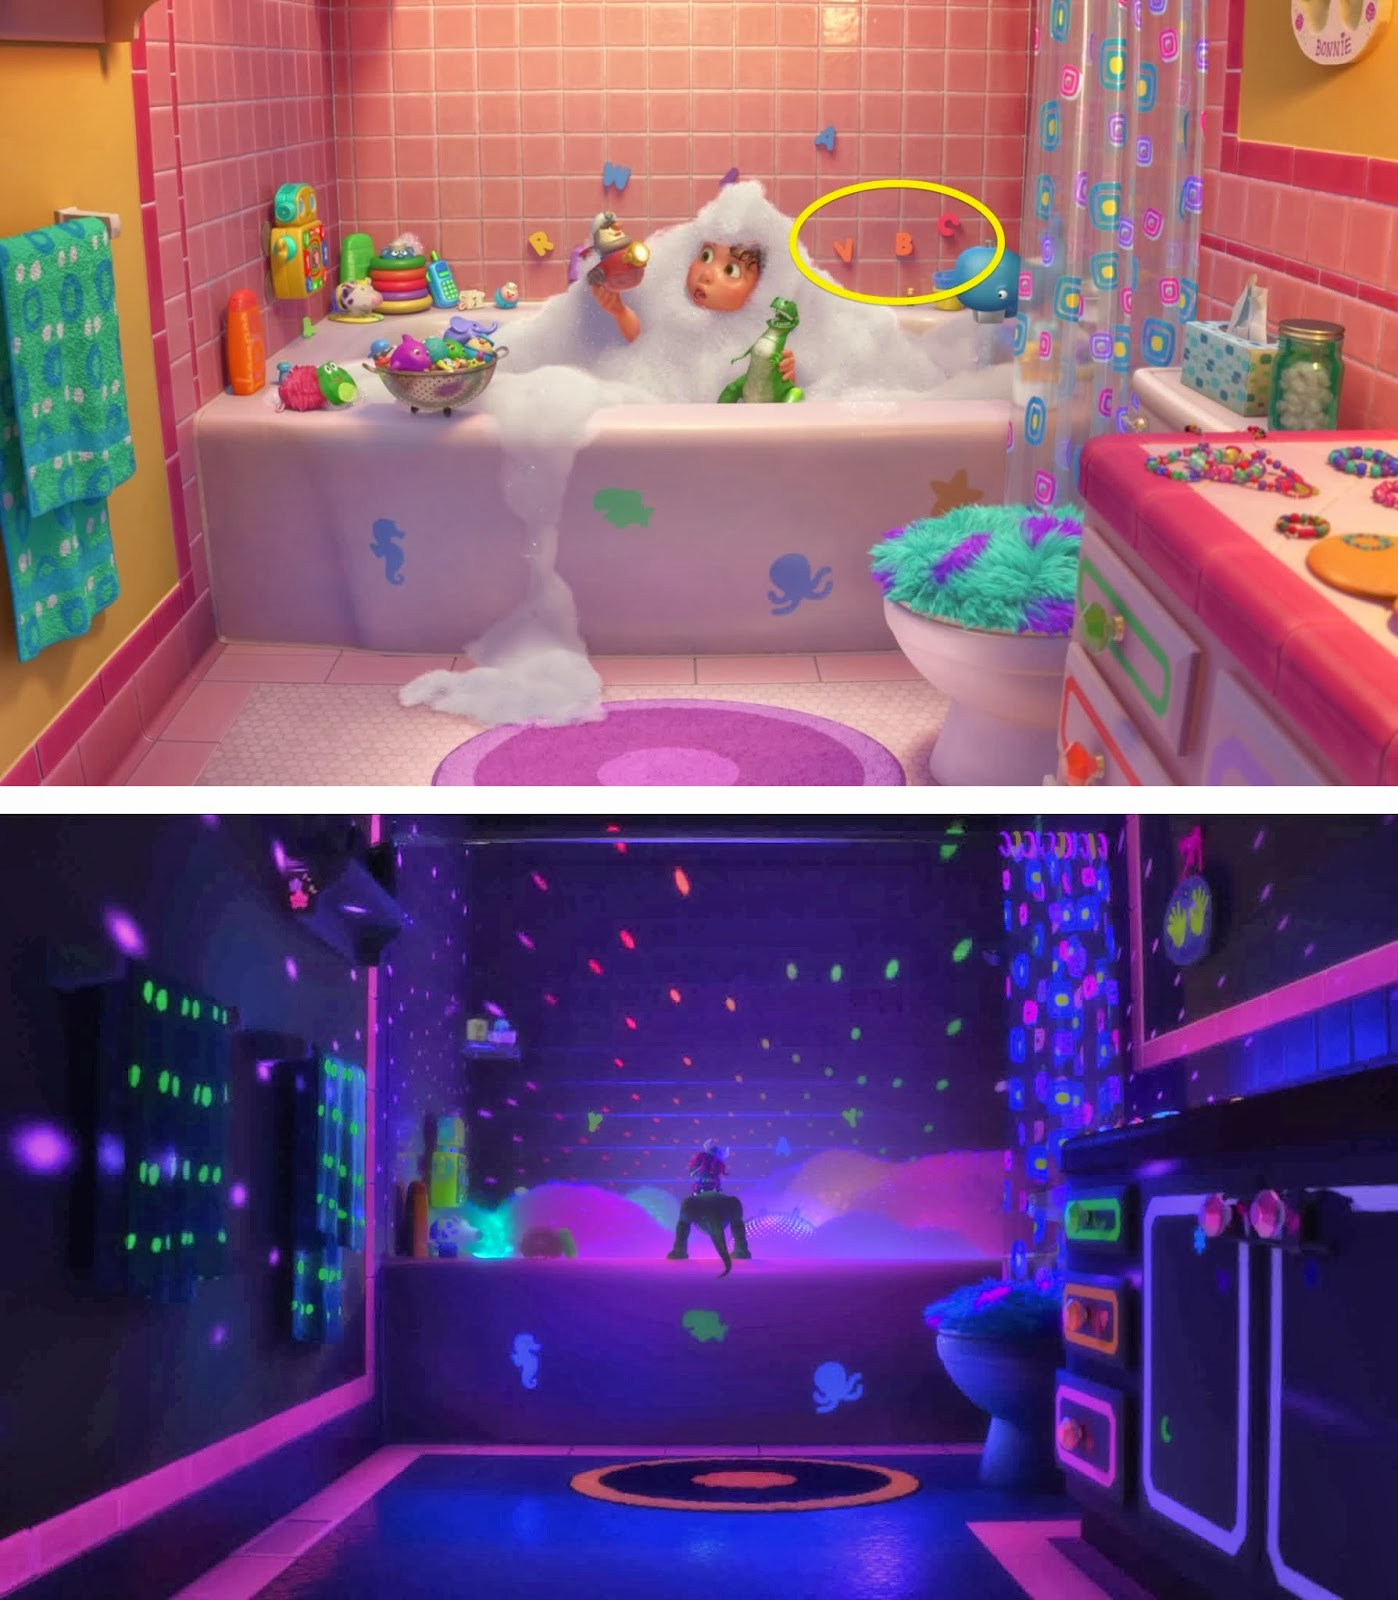 Toy story 3 bathroom scene 28 images toy story 3 for Monsters inc bathroom scene